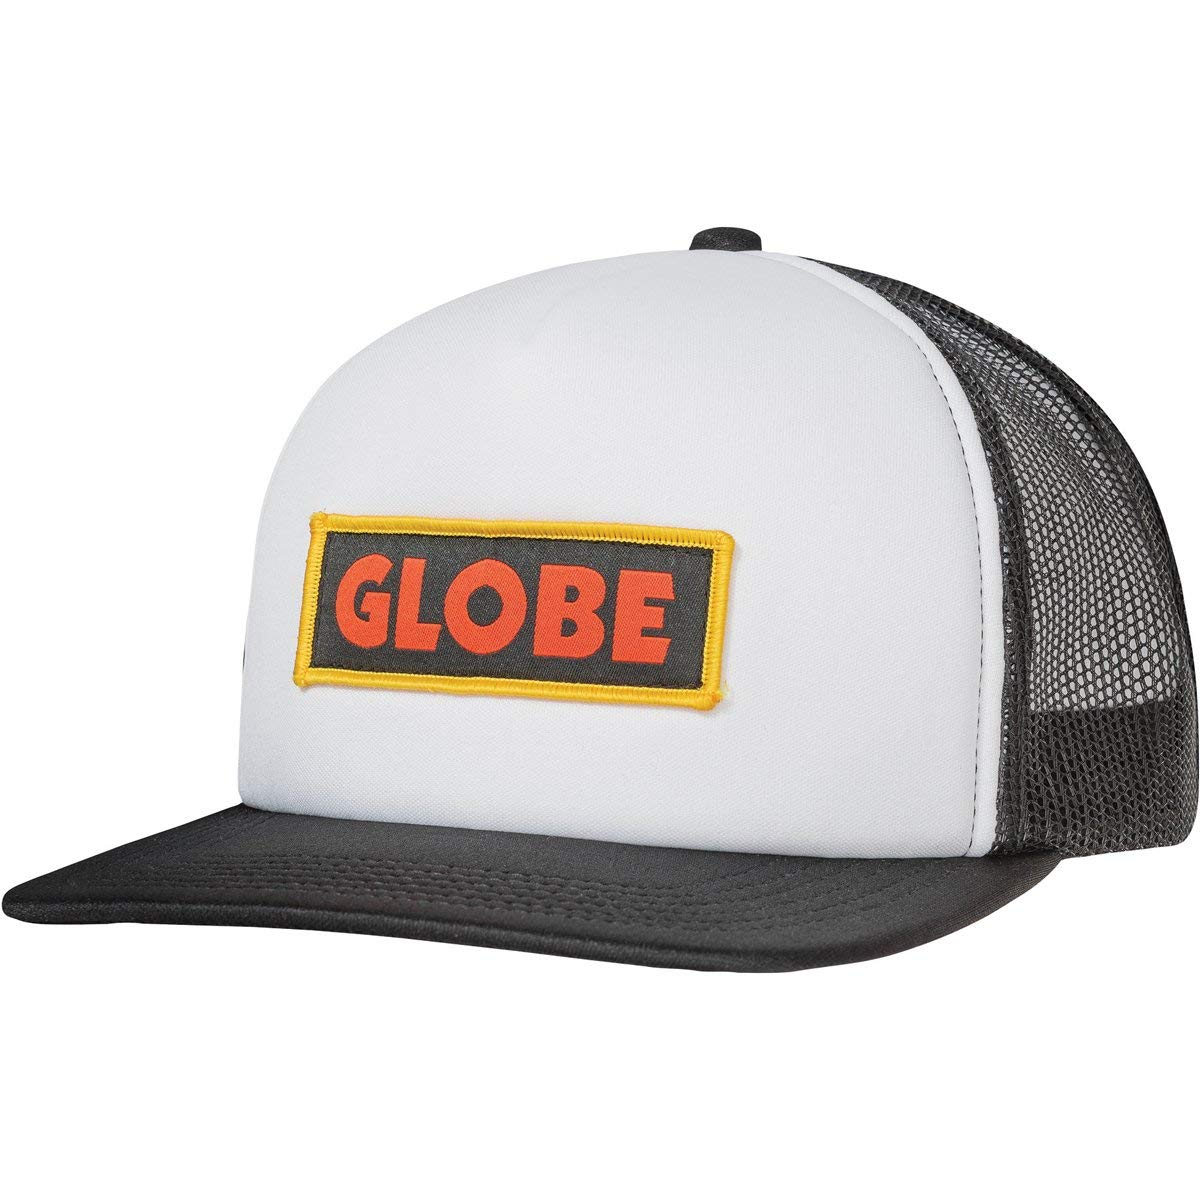 Globe Primed Trucker Gorra, Unisex Adulto, White/Black, Talla ...